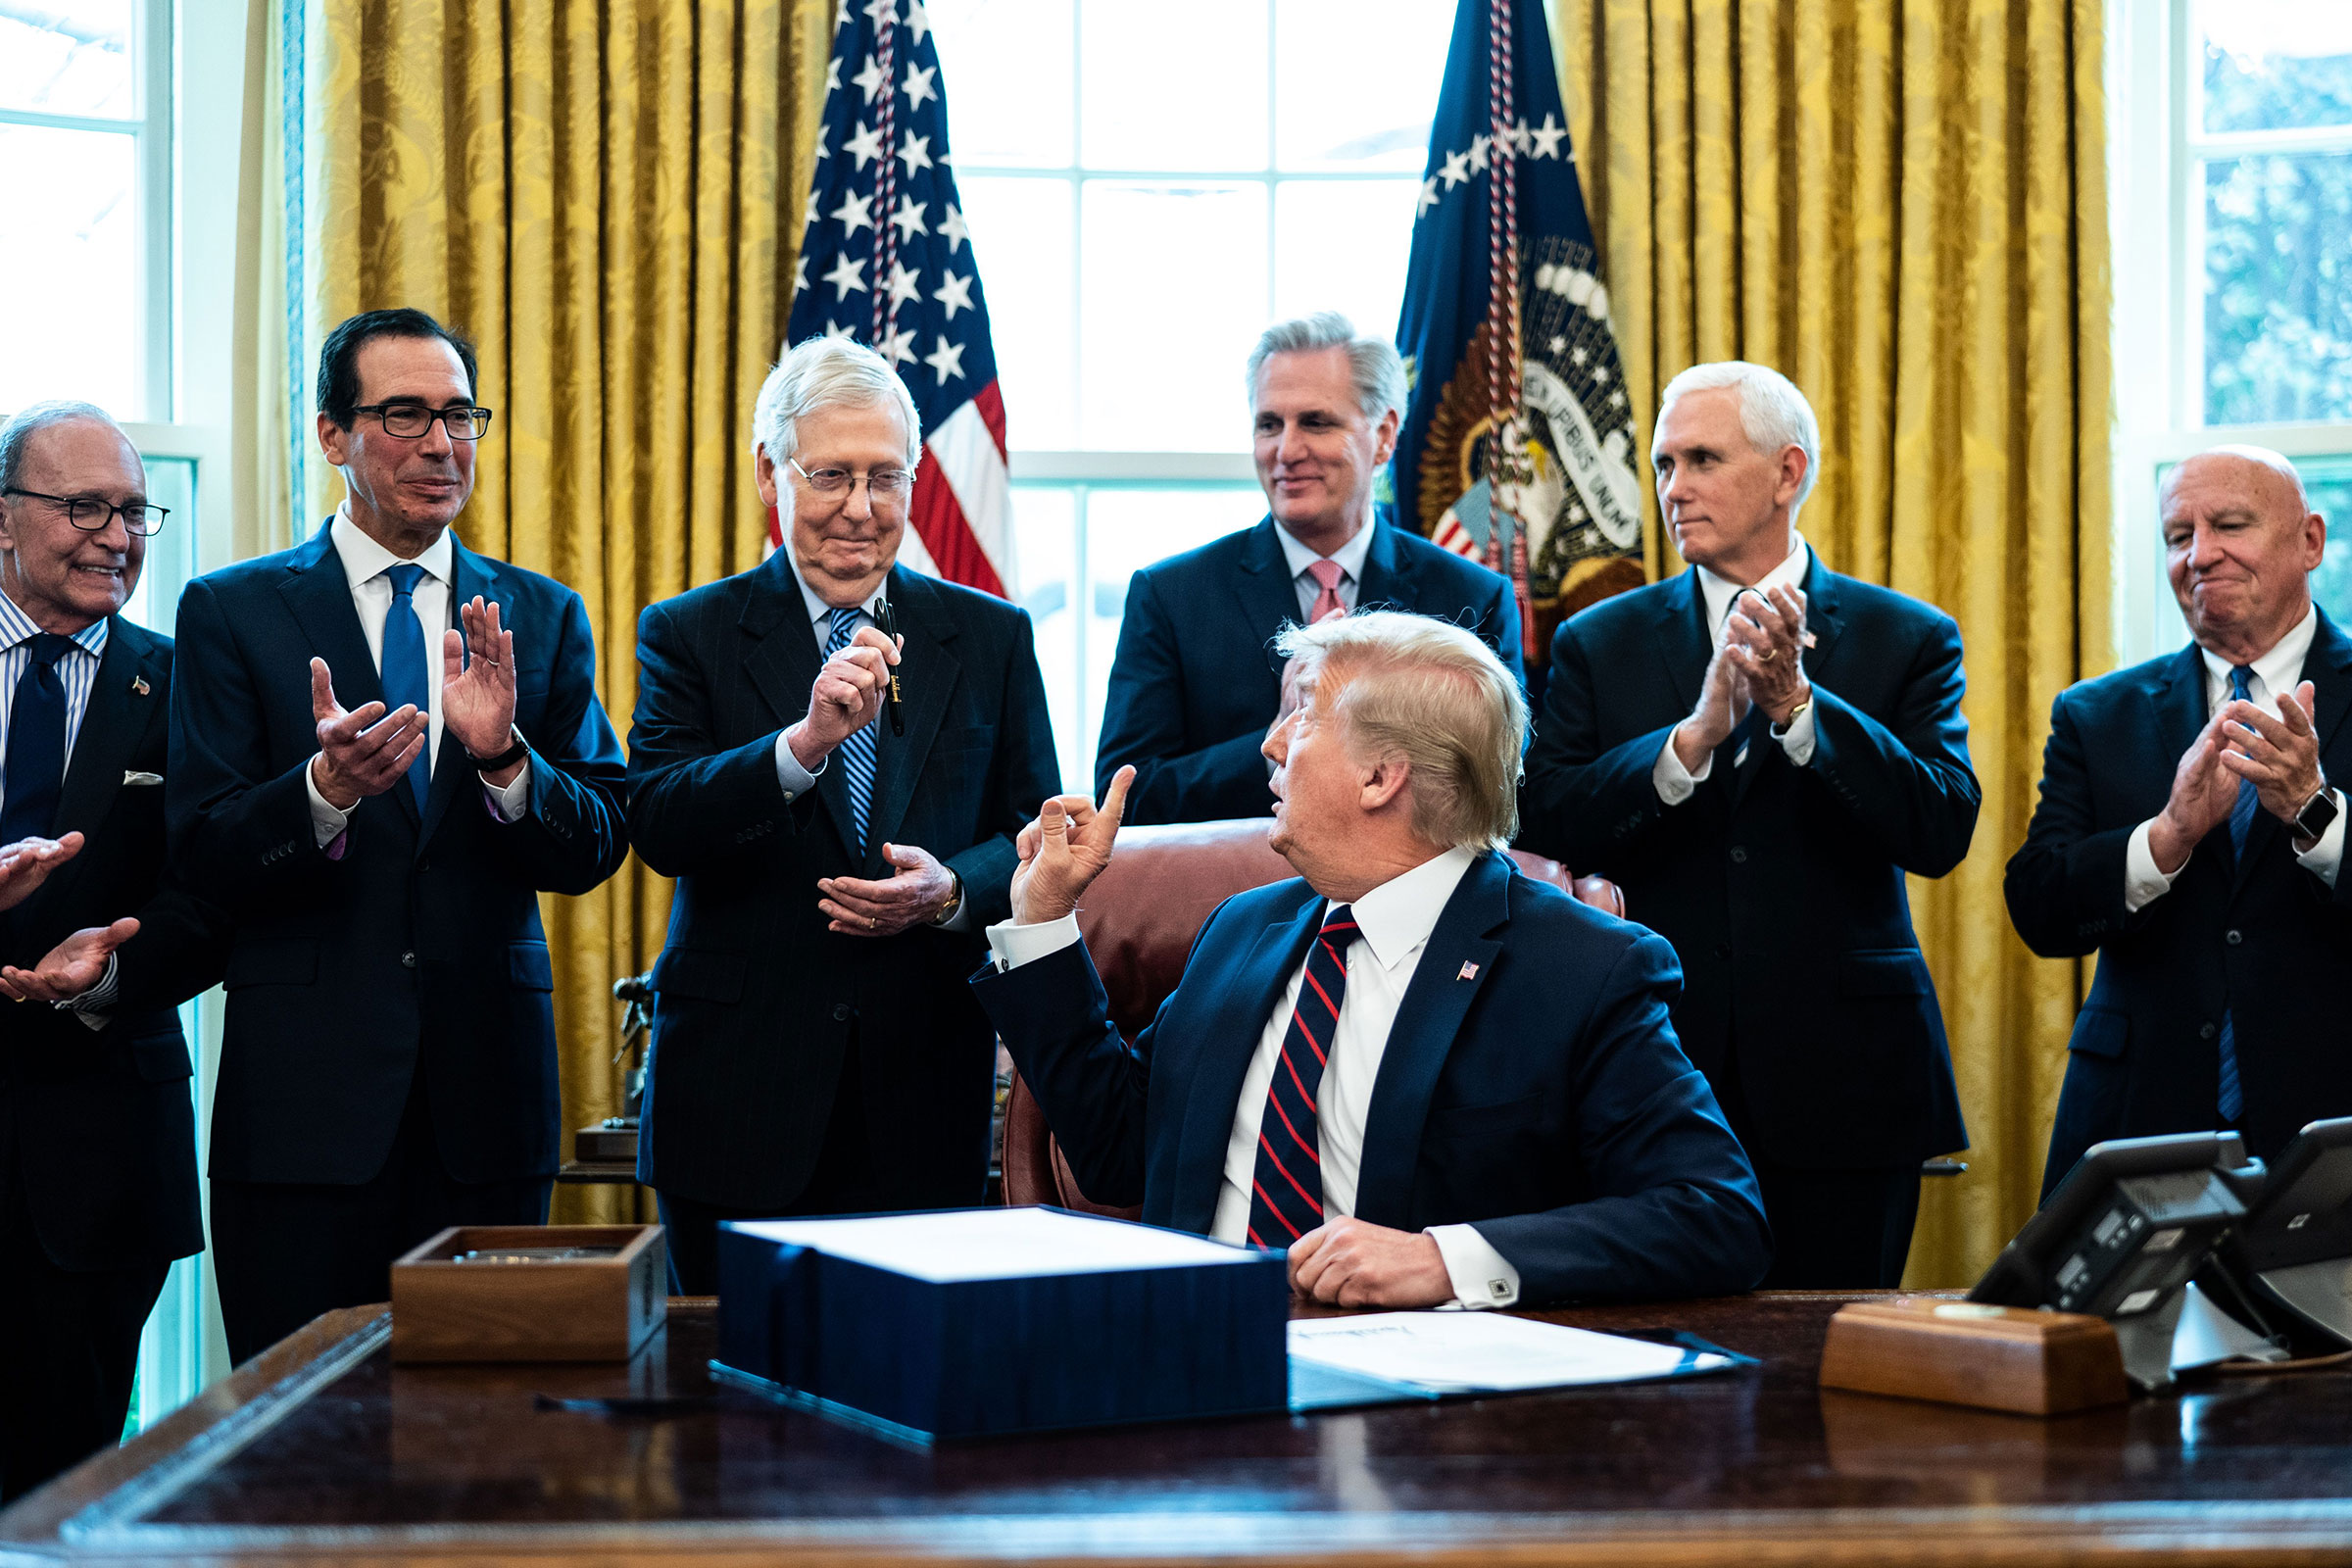 President Donald Trump hands a pen to Republican Senate Majority Leader Mitch McConnell during a signing ceremony for the The CARES Act in the Oval Office on 27 March 2020.